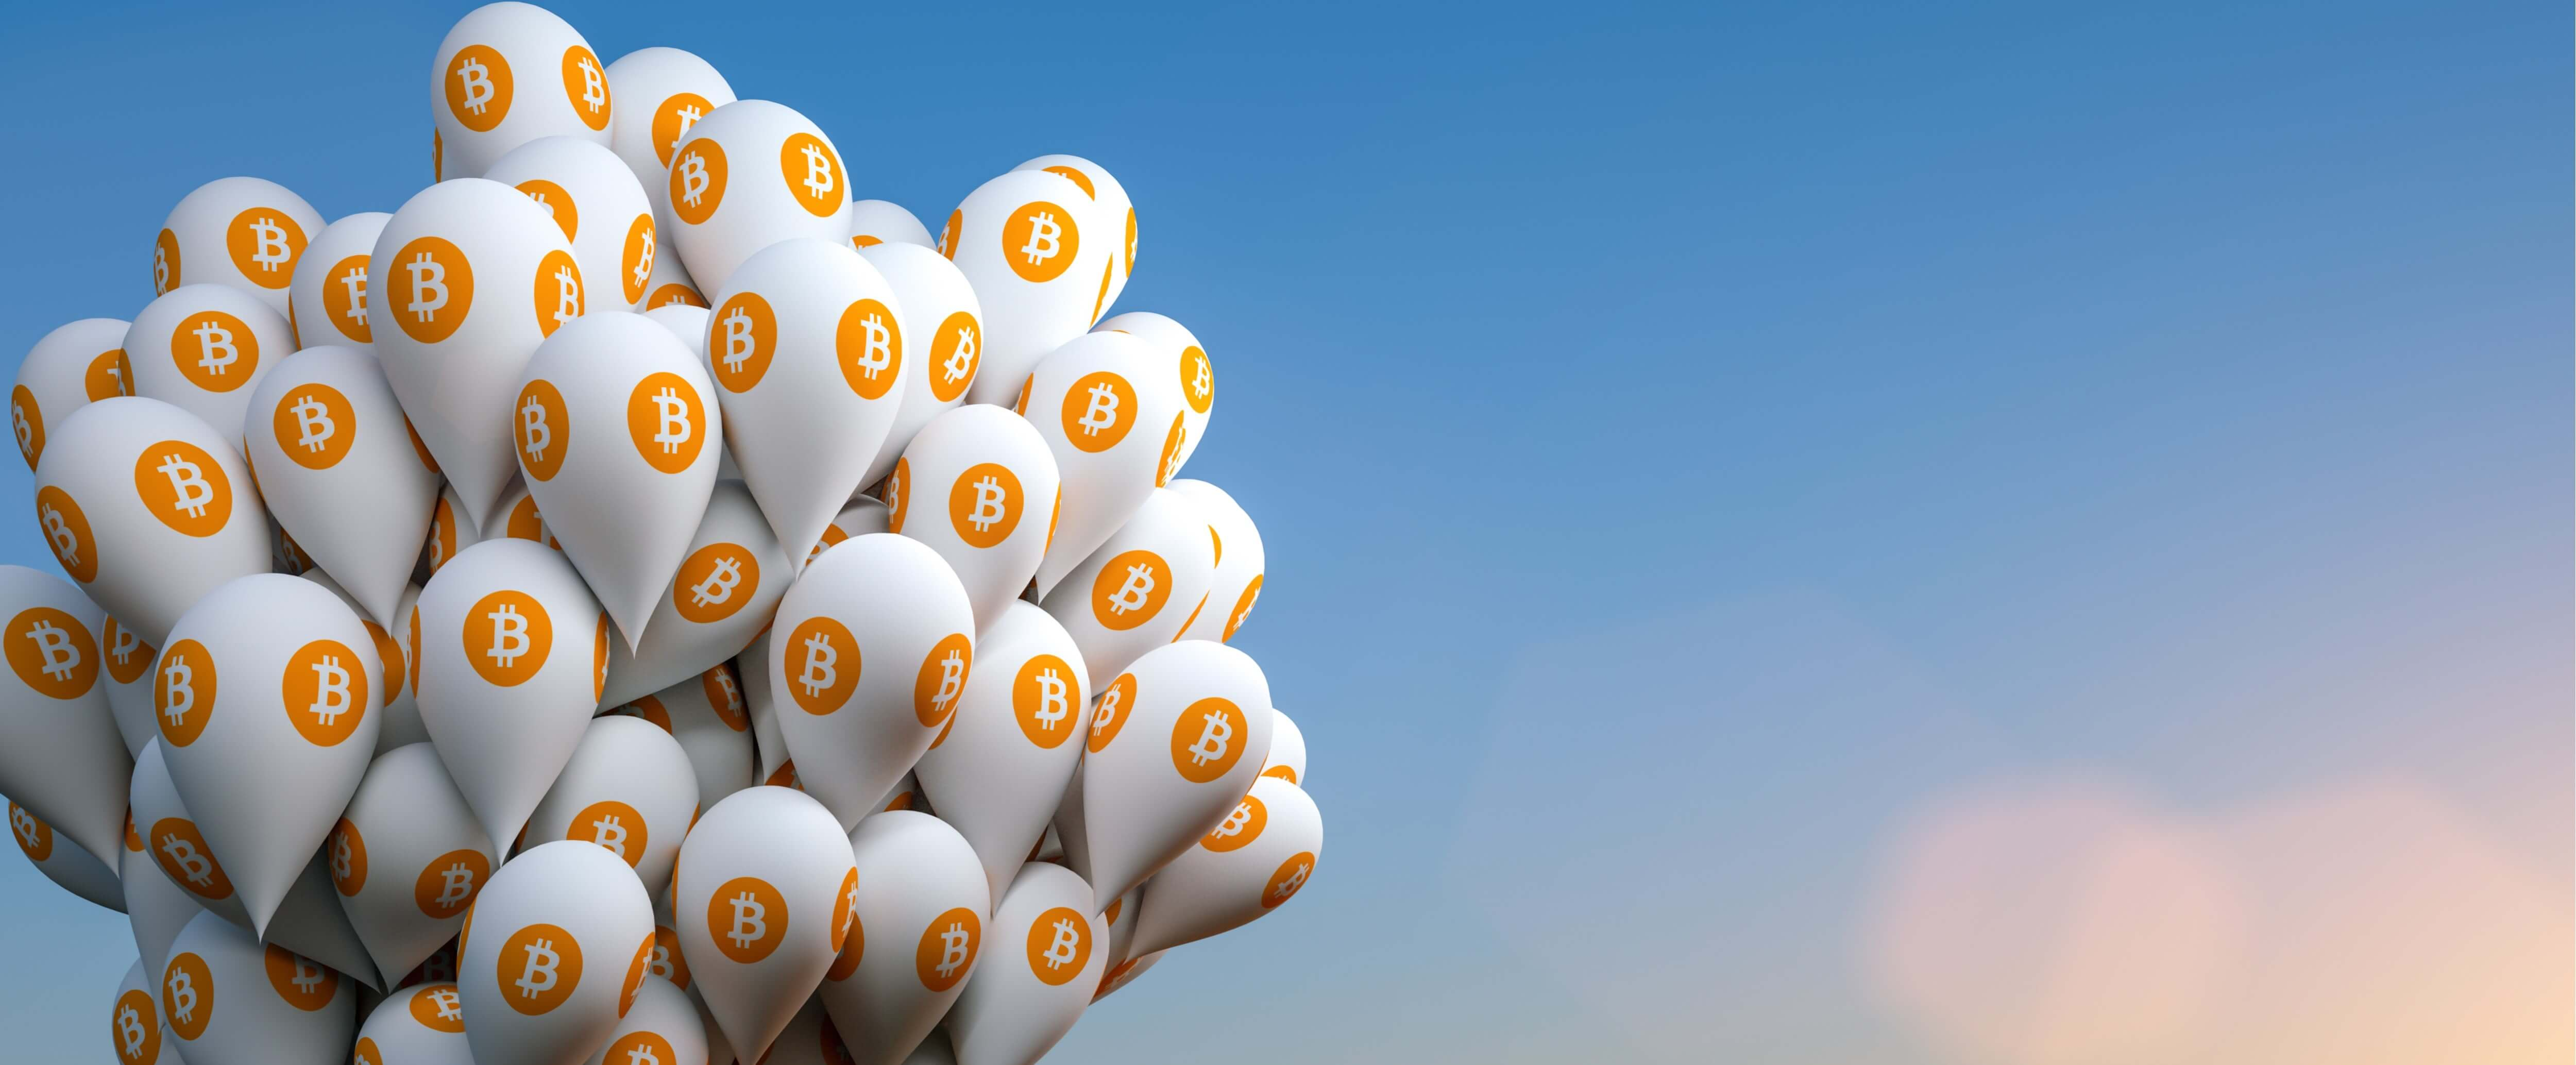 When will the explosion of the Bitcoin bubble?